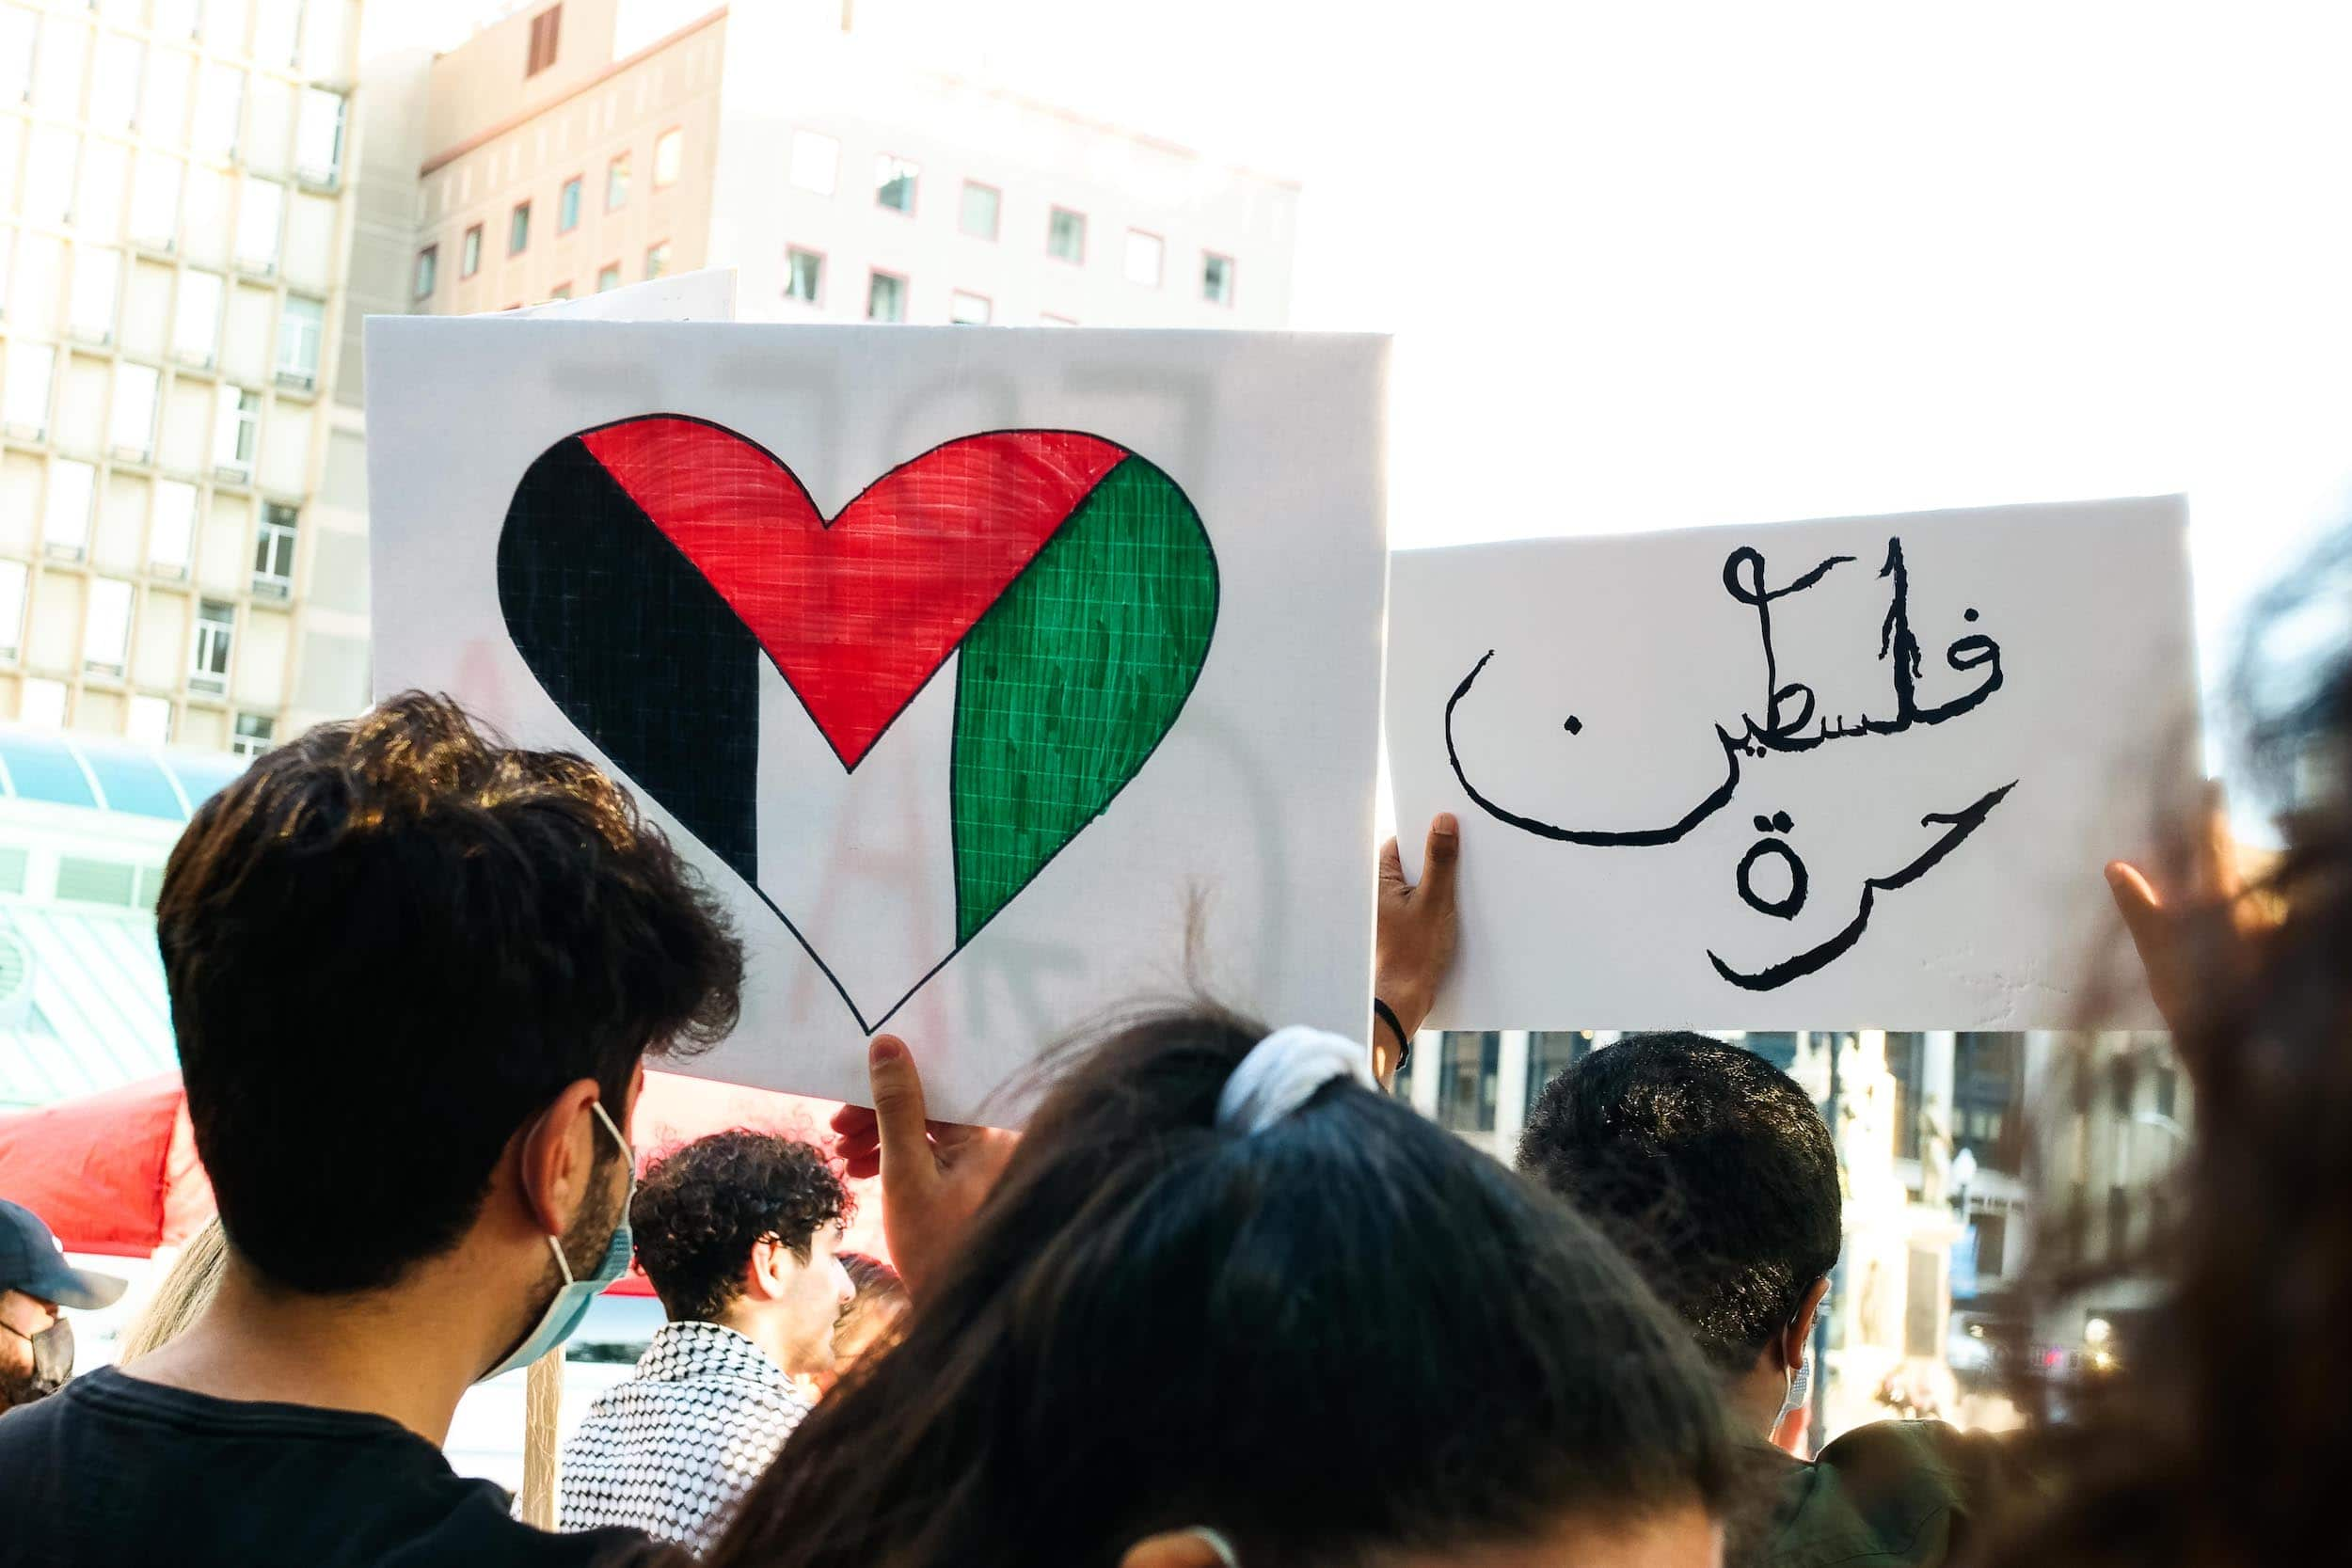 Photo for Selene Means: Photos from the Free Palestine rally in Providence